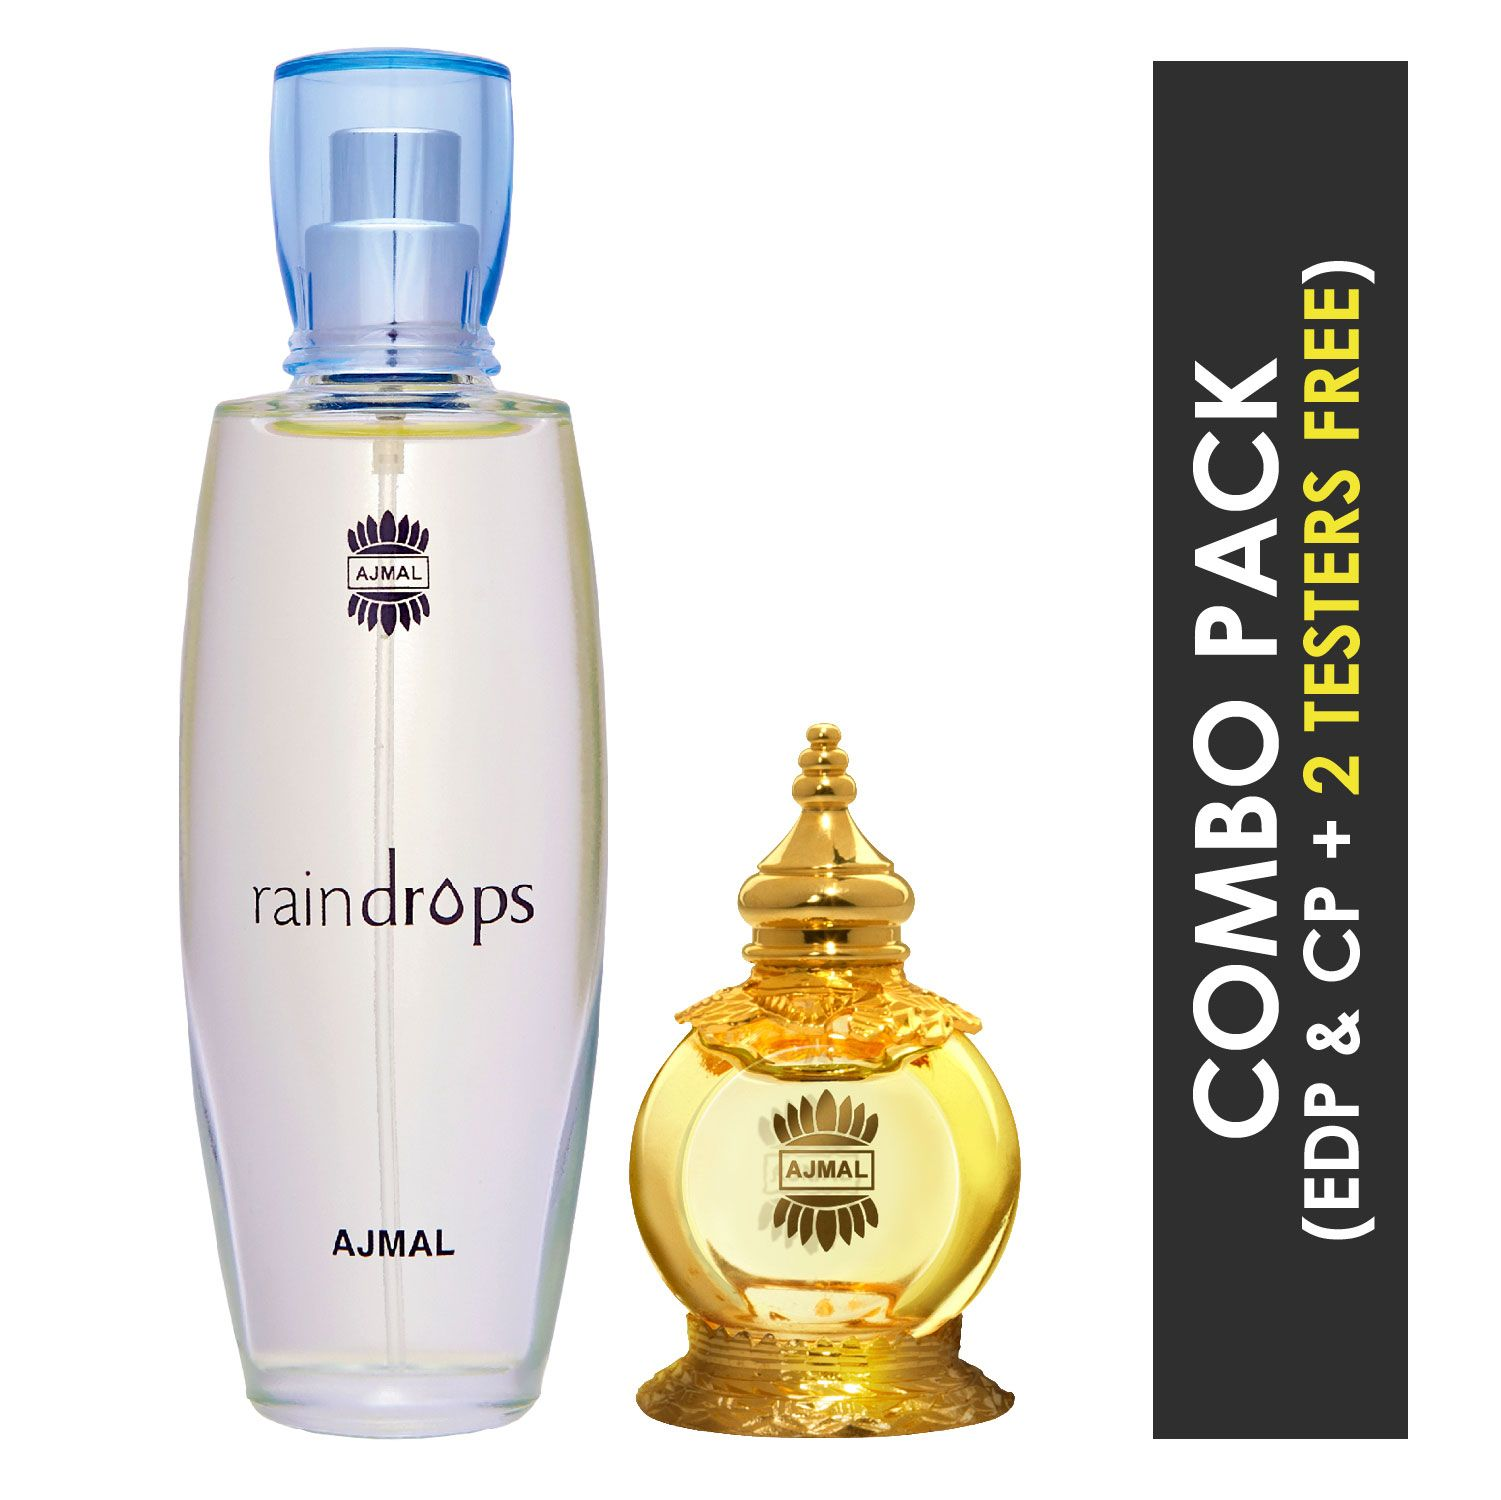 Ajmal   Ajmal Raindrops EDP Floral Chypre Perfume 50ml for Women and Mukhallat AL Wafa Concentrated Perfume Oil Oriental Musky Alcohol-free Attar 12ml for Unisex + 2 Parfum Testers FREE